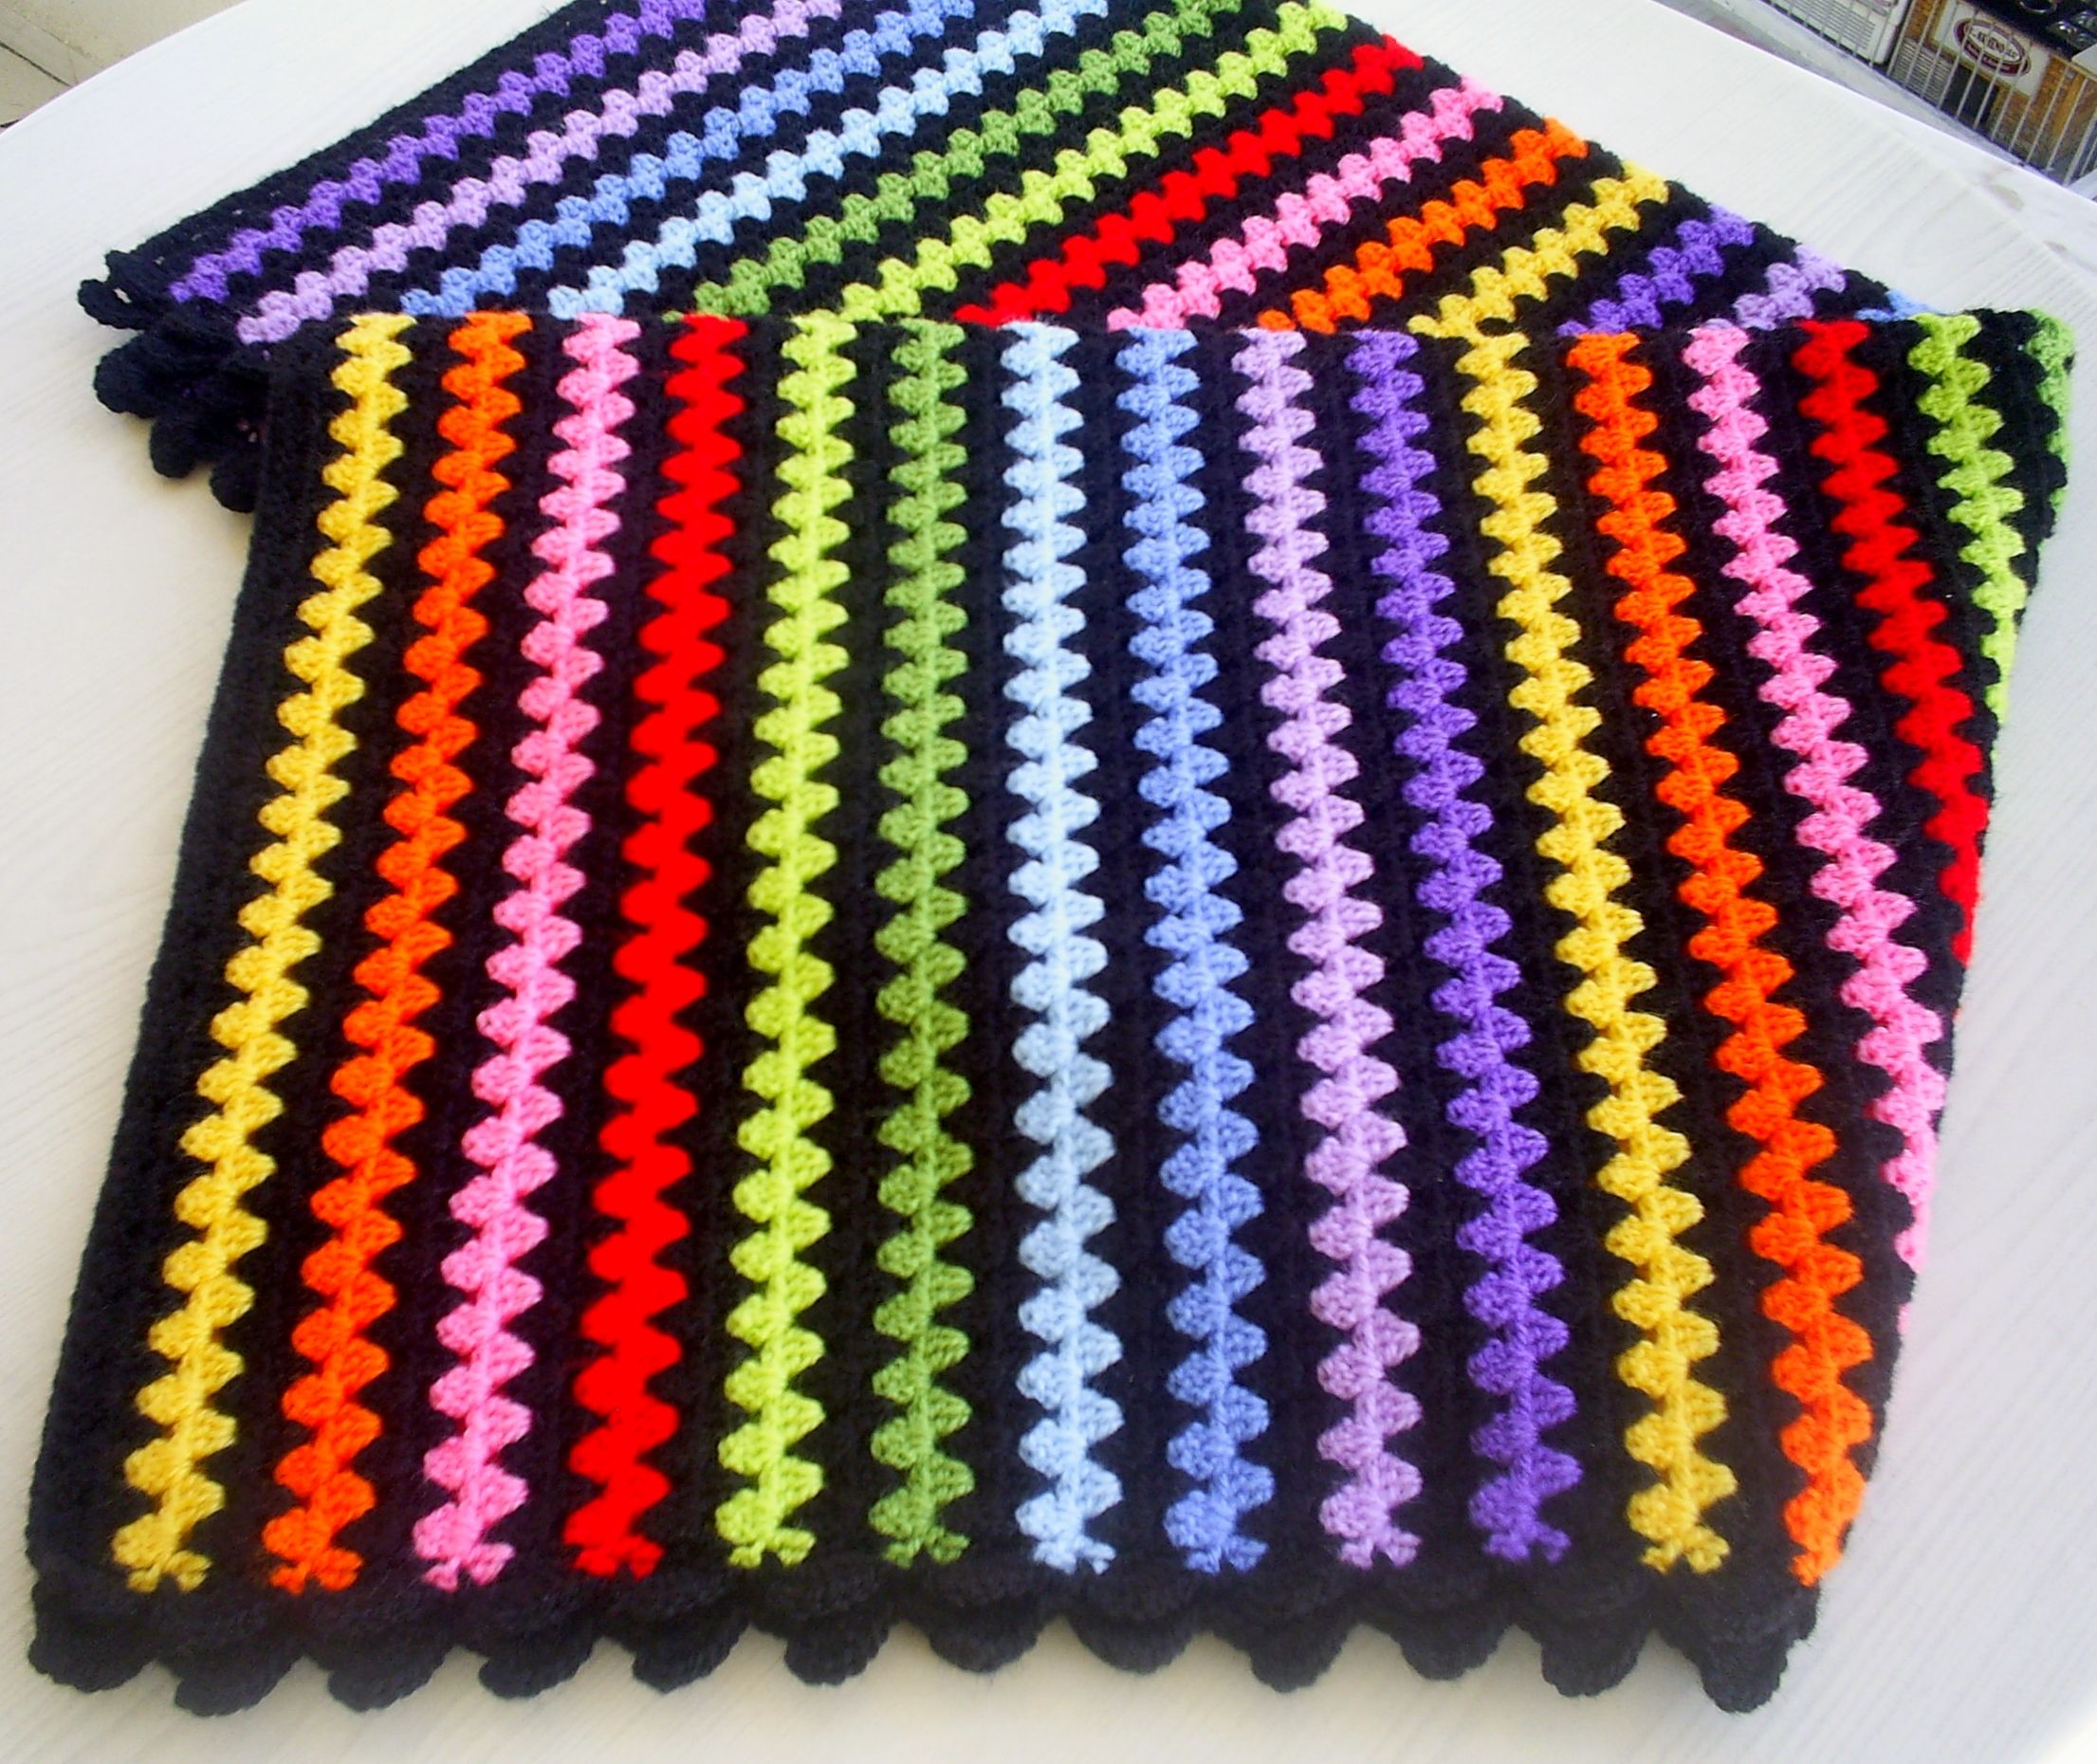 Crochet Granny Stripe Baby Blanket Pattern : granny stripe blanket--picture only. Would make cute boot ...